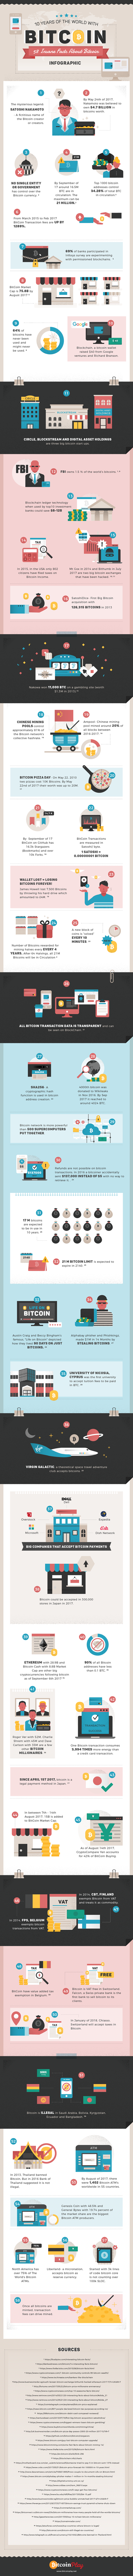 Interesting Facts about Bitcoin